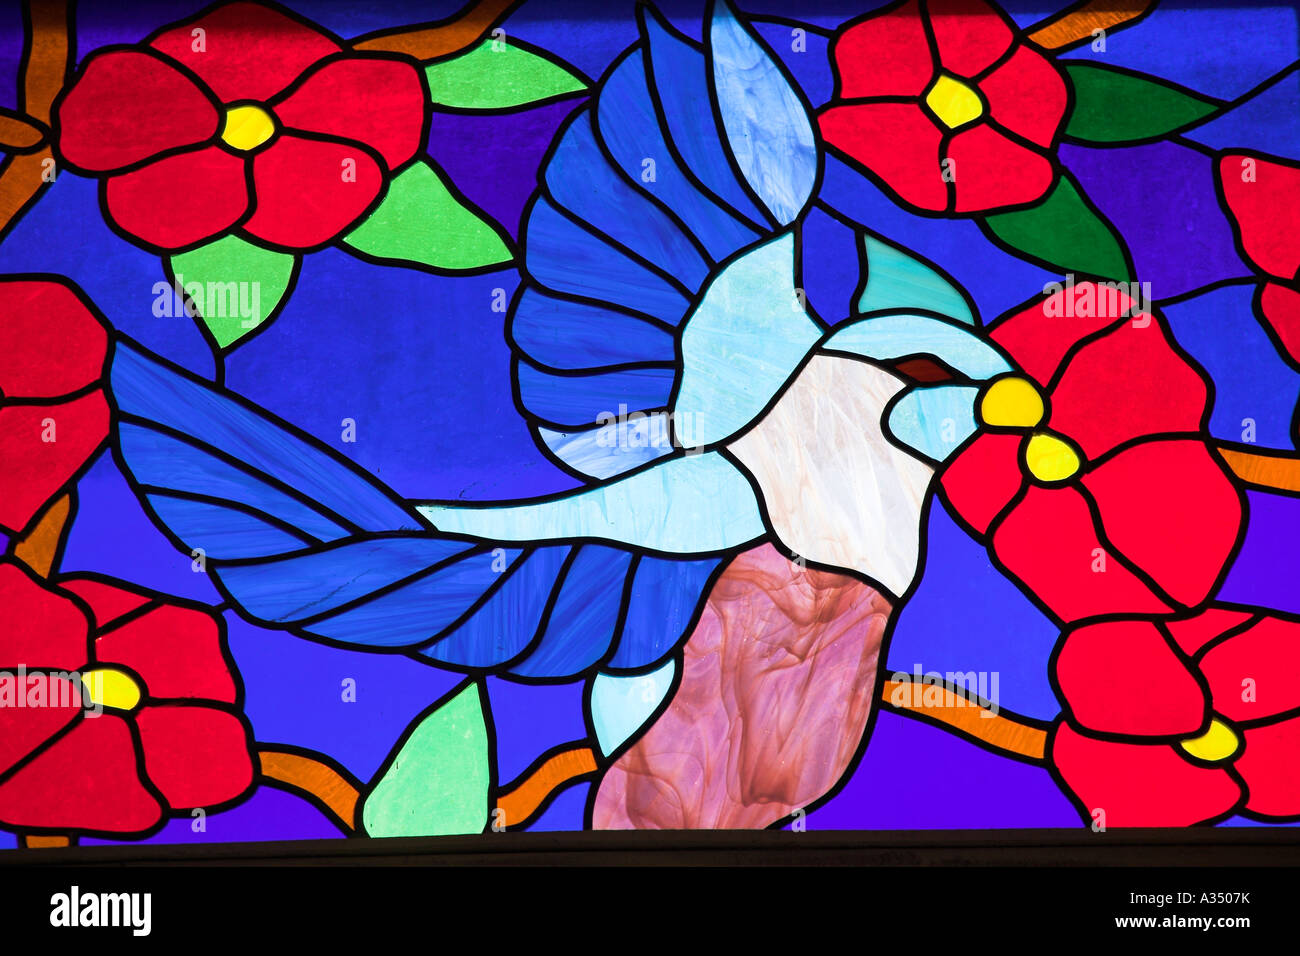 Colourful Stained Glass Window Of A Bird Perched In A Tree